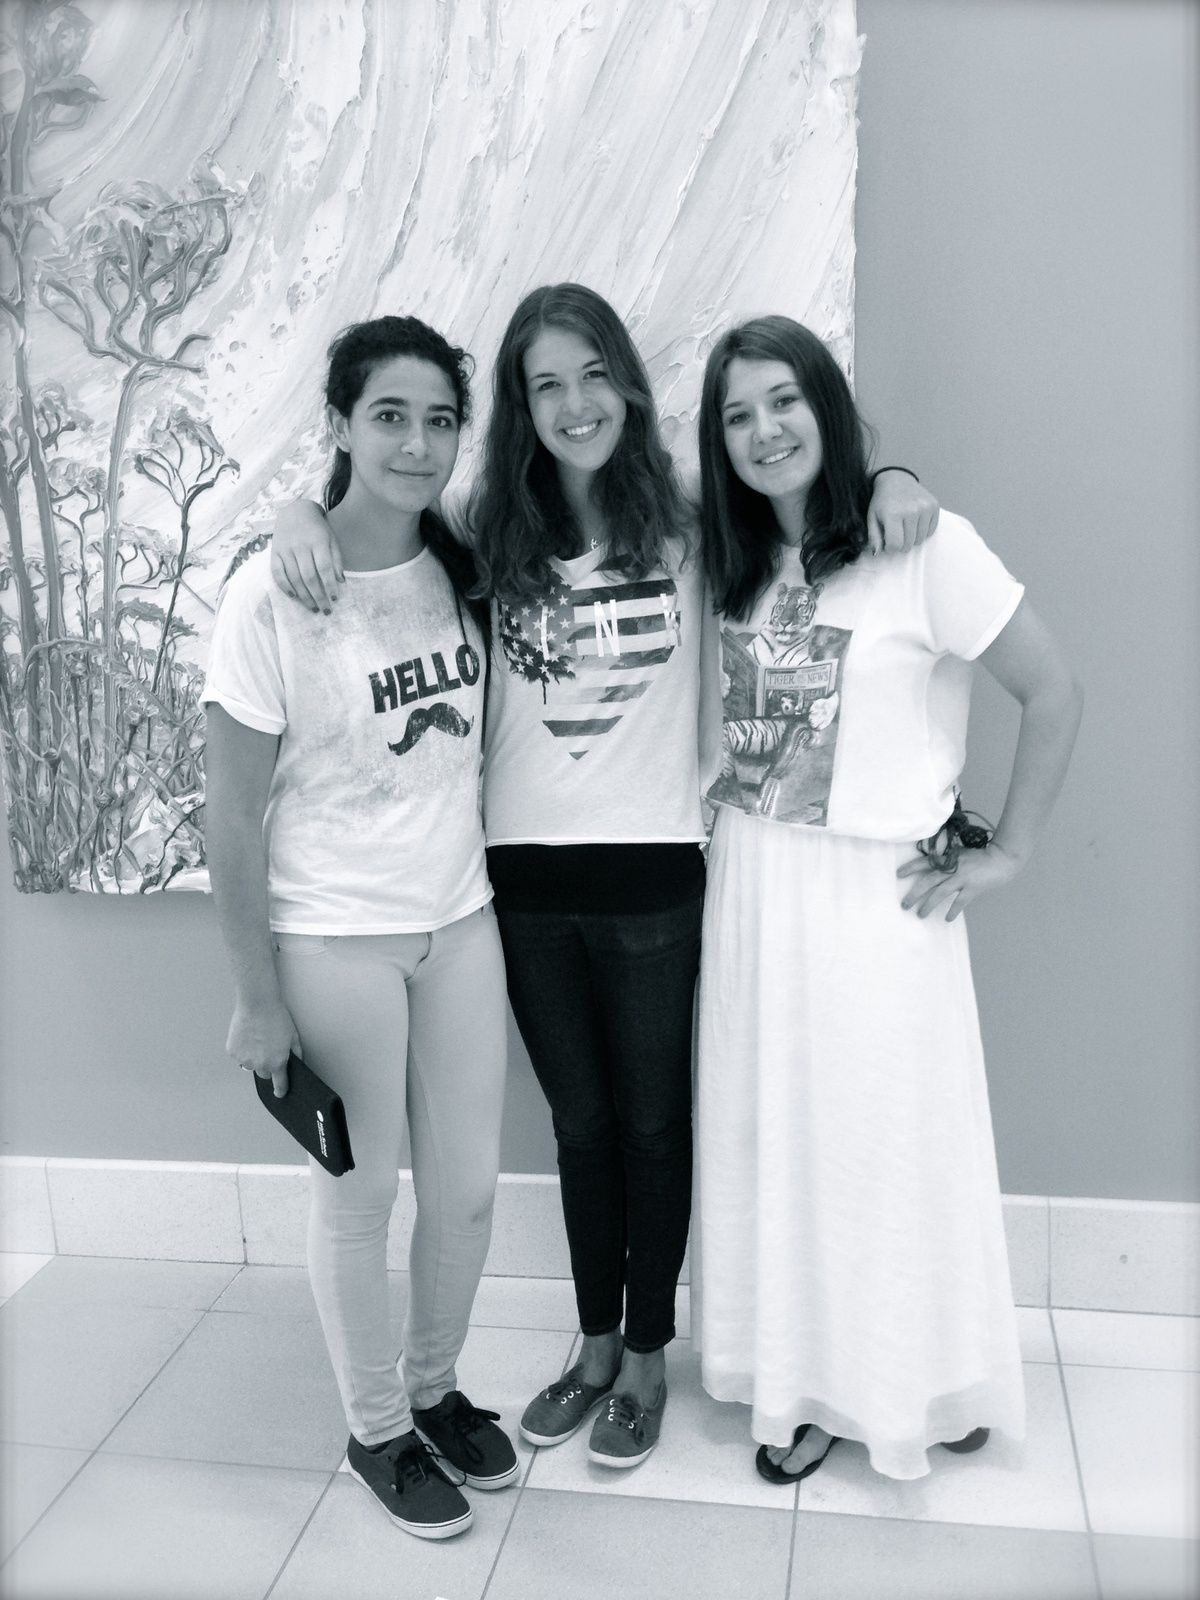 Last picture of Marit, Helena and me